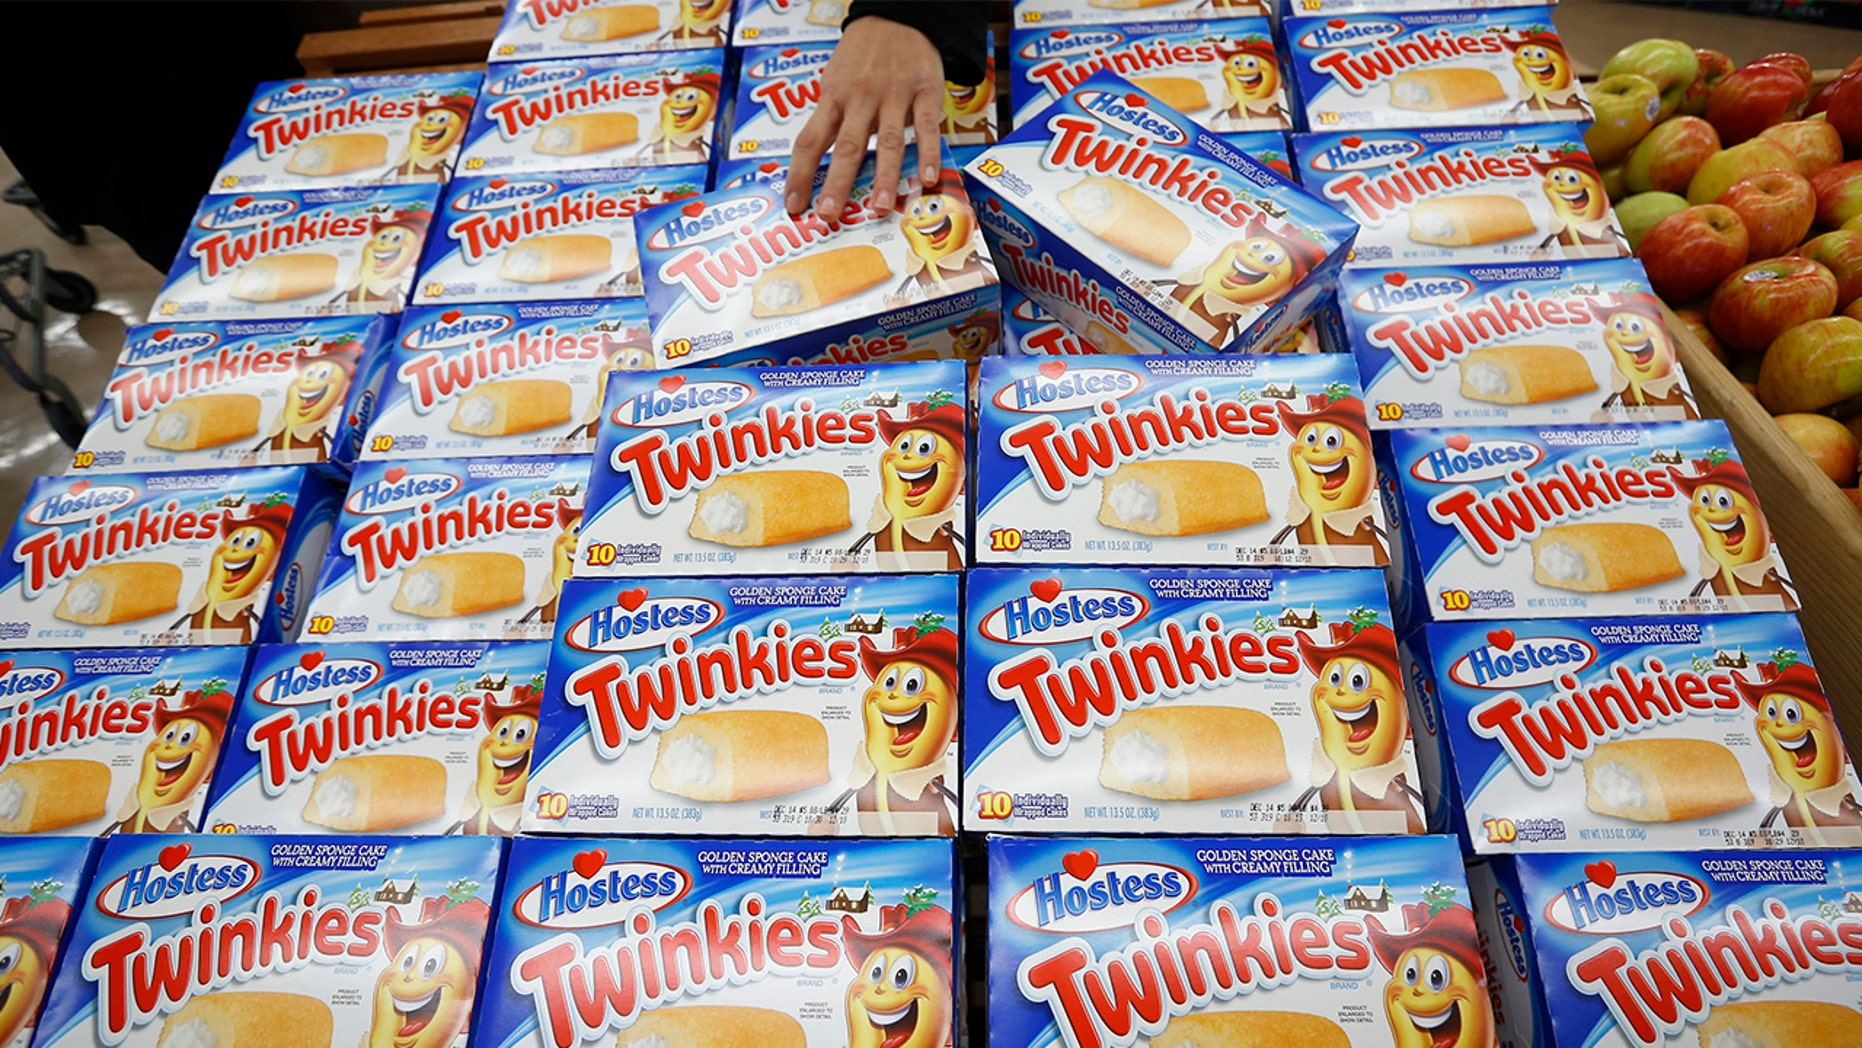 Employees of Hostess just found of the company will be giving them a year's worth of free Twinkies and Ding Dongs as part of their bonus.